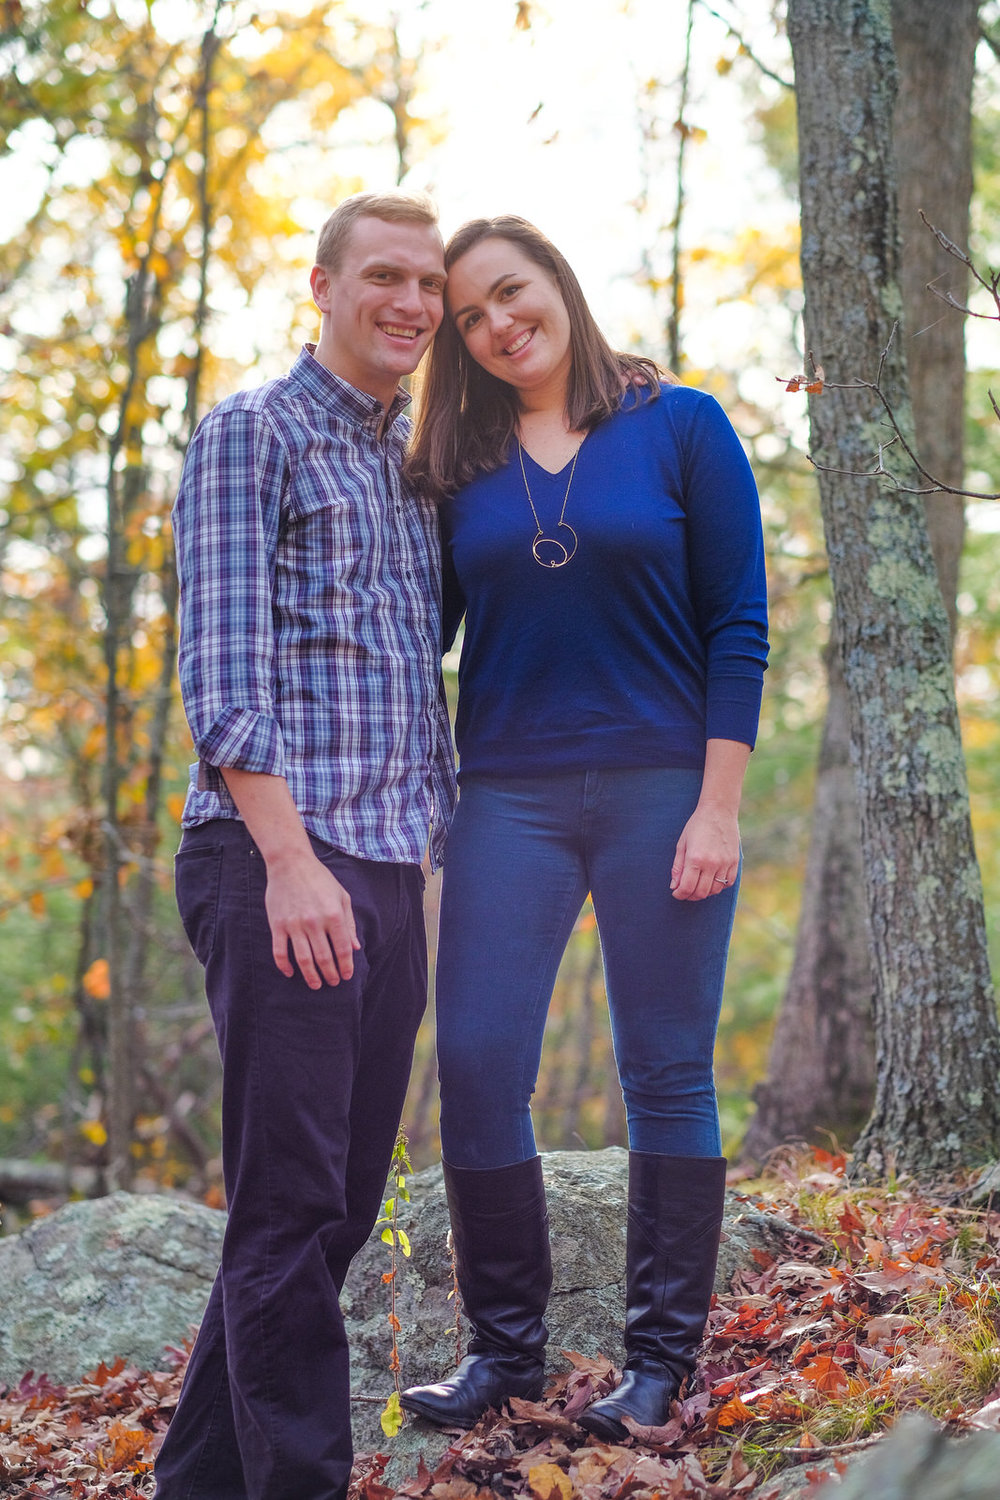 medford-engagement-photography-98.jpg